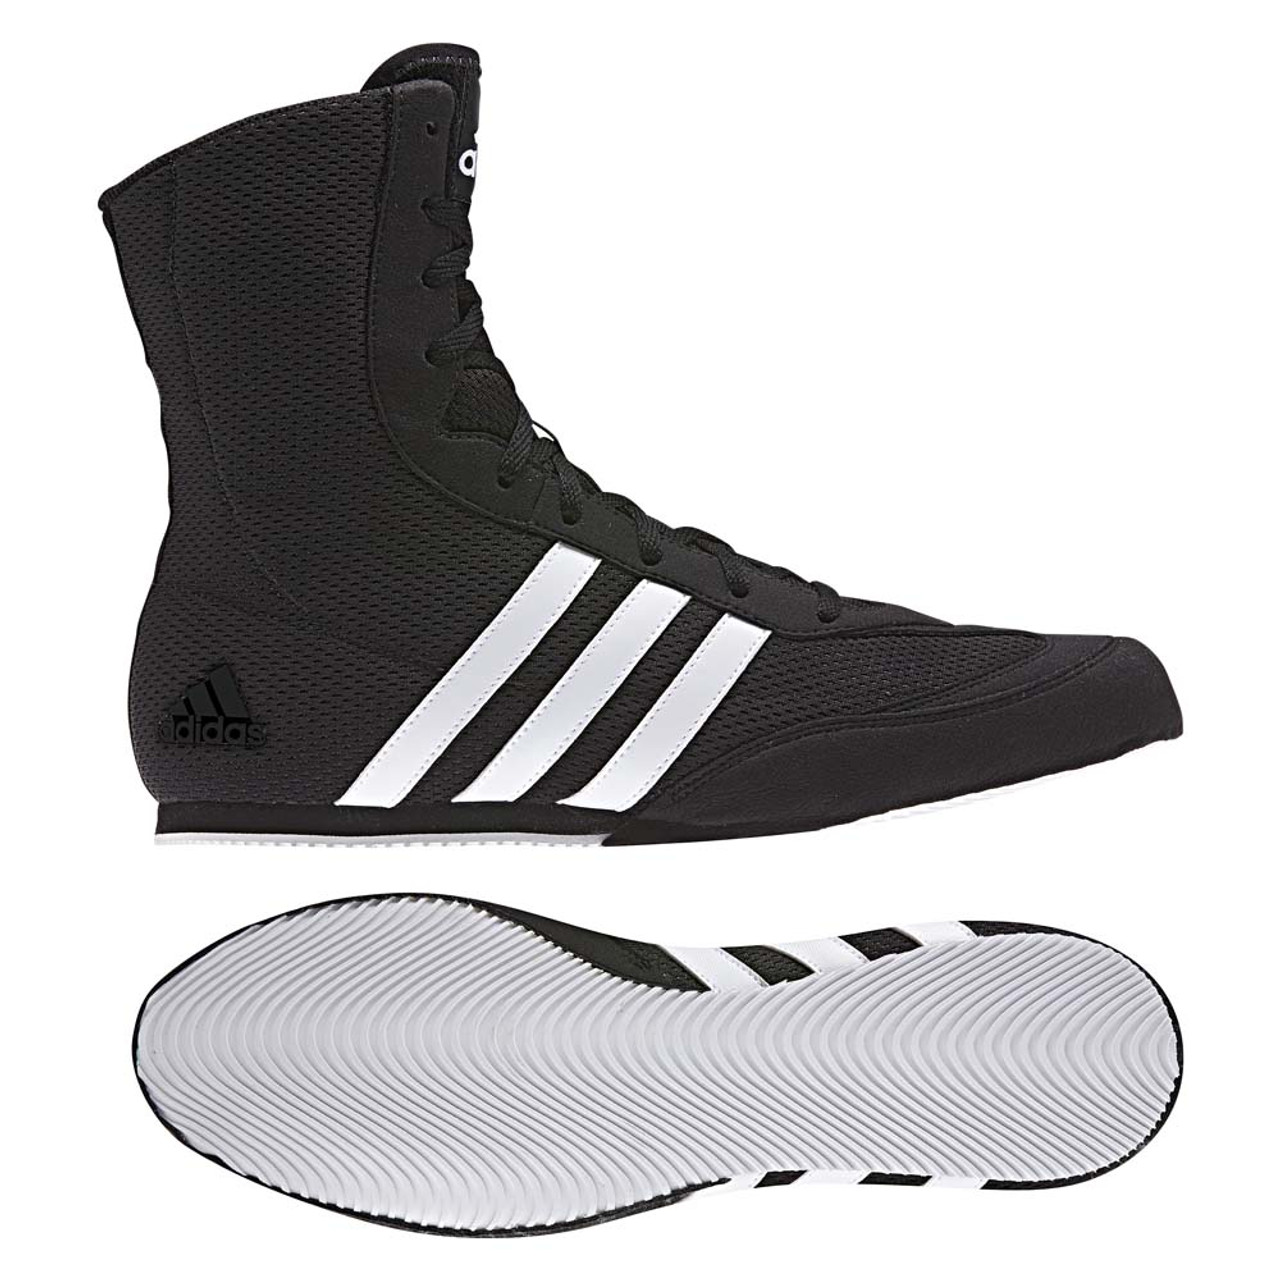 new products 51f8a 0e178 Adidas 2017 Box Hog Boxing Boots Black White